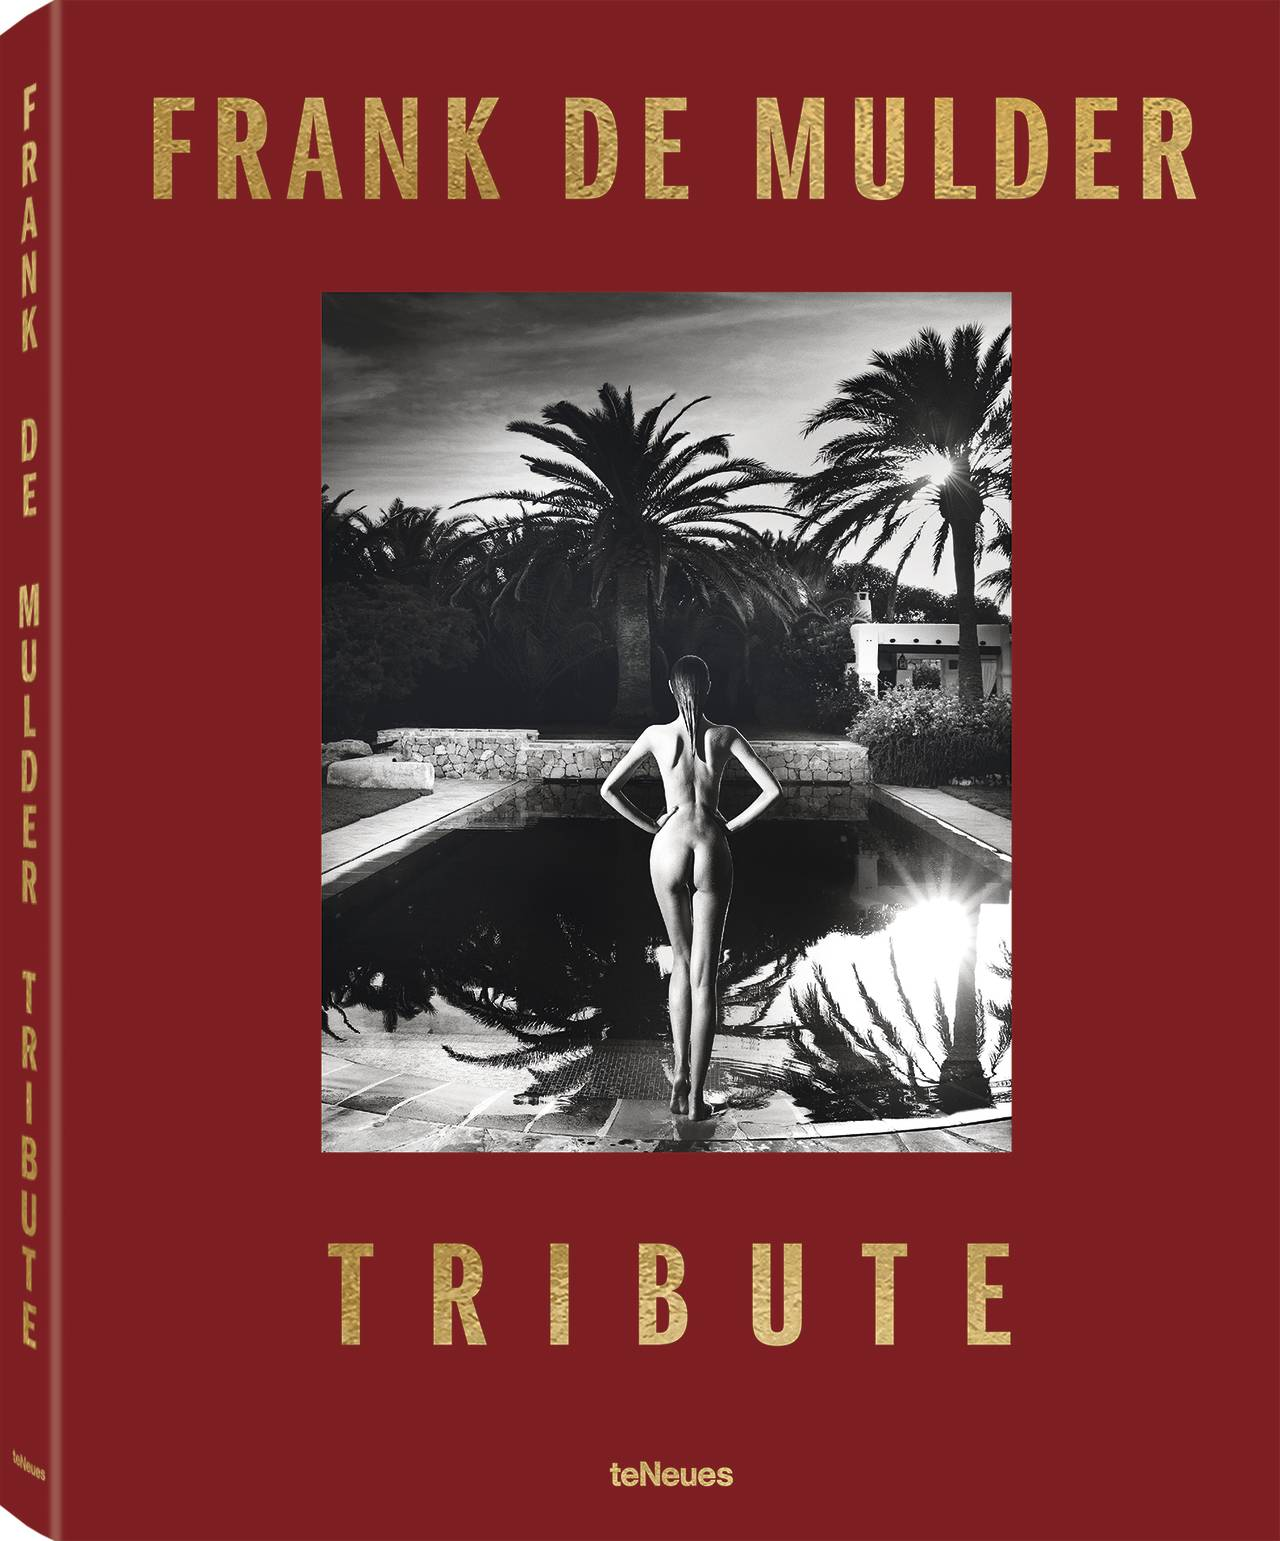 © TRIBUTE by Frank De Mulder, published by teNeues, www.teneues.com, At The Pool II, Photo © 2017 Frank De Mulder. All rights reserved.